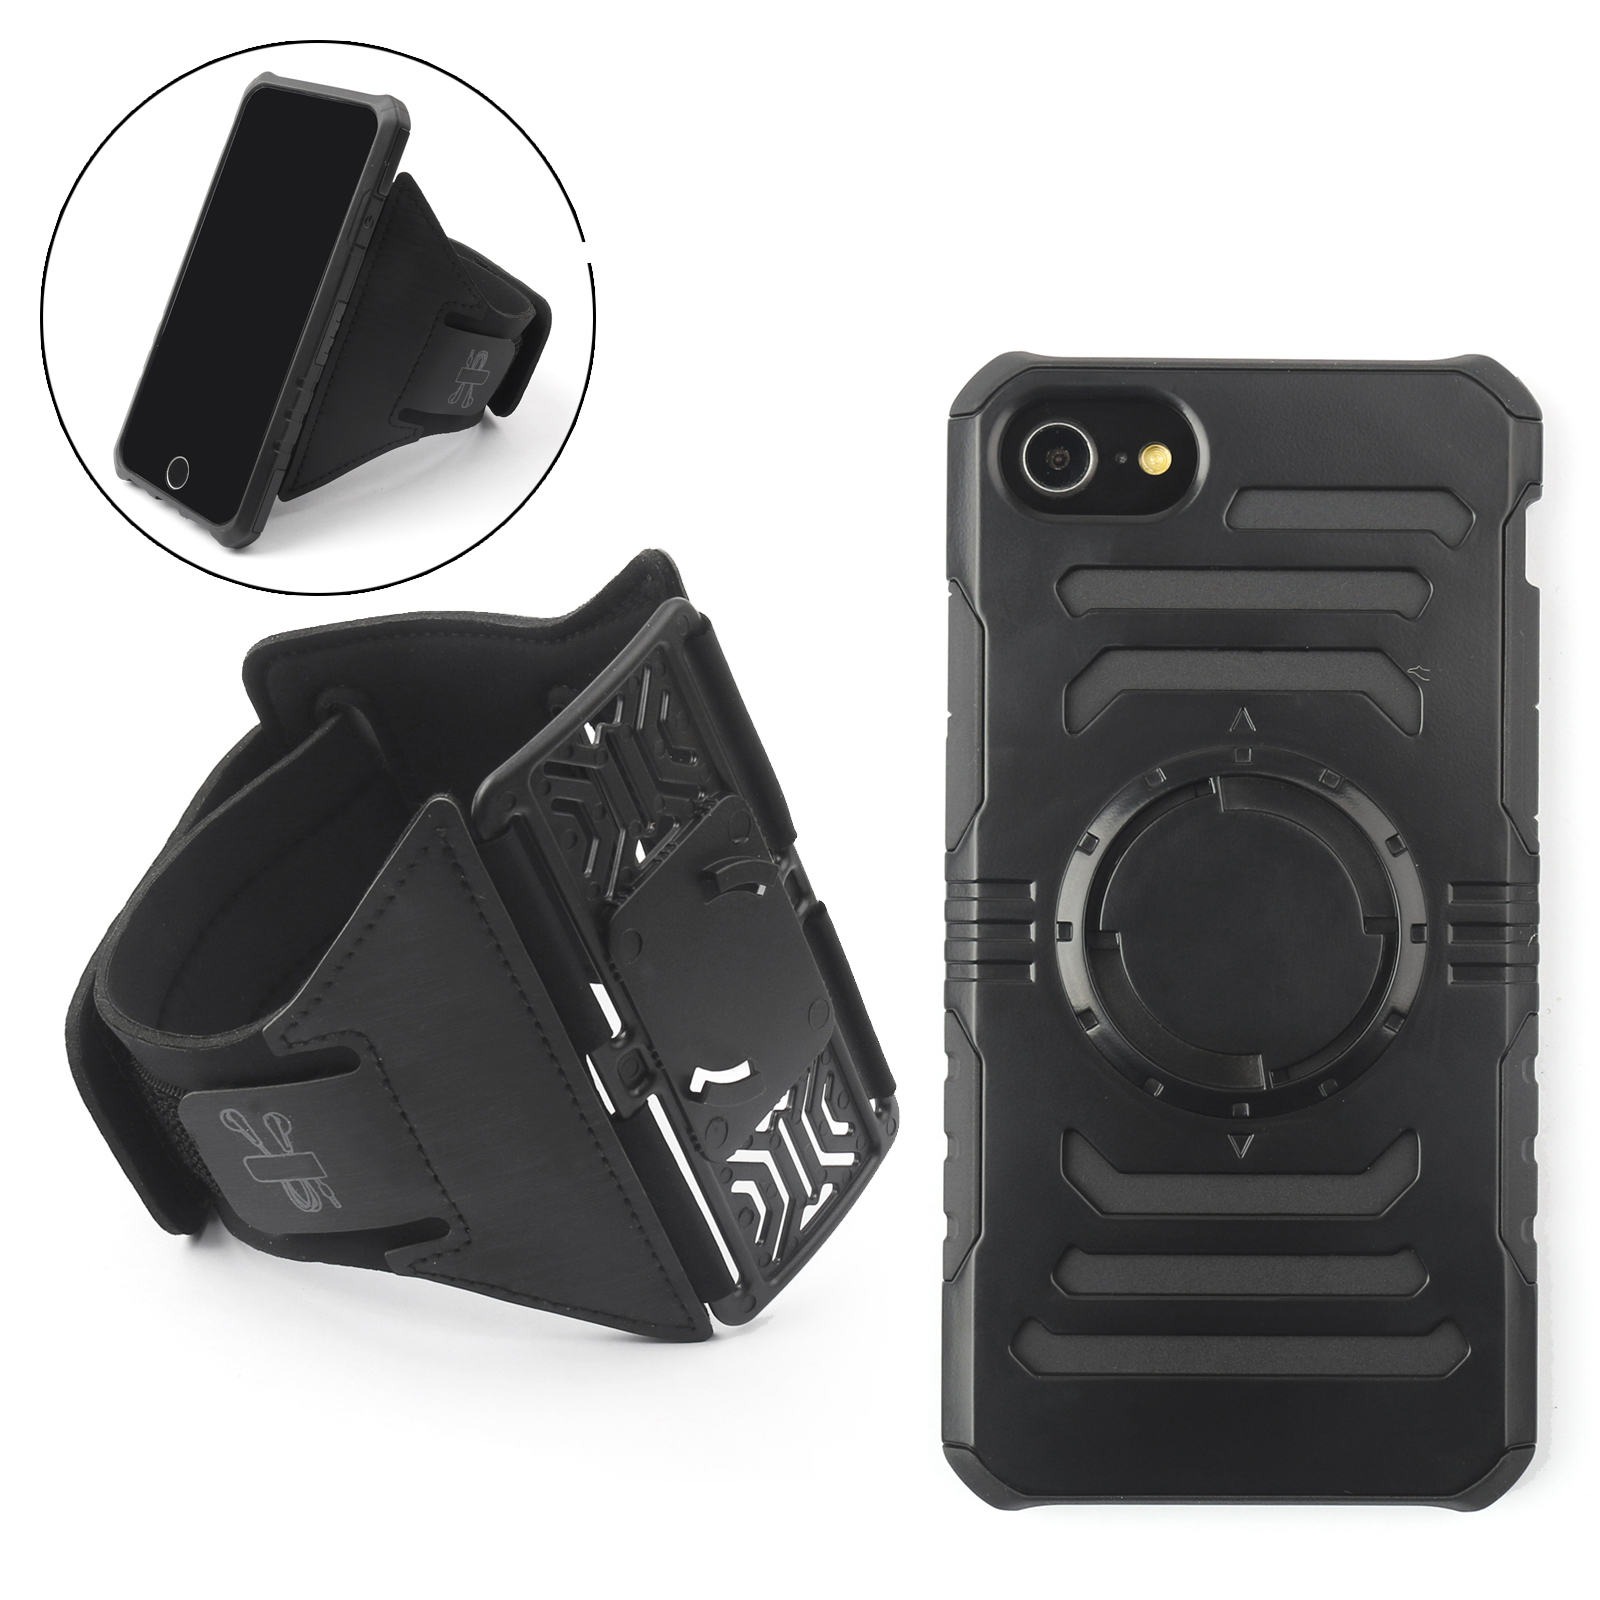 Areyourshop Armband Arm Band Sports Running Shockproof Magnetic Case For Iphone 6 6S 7 8 Black